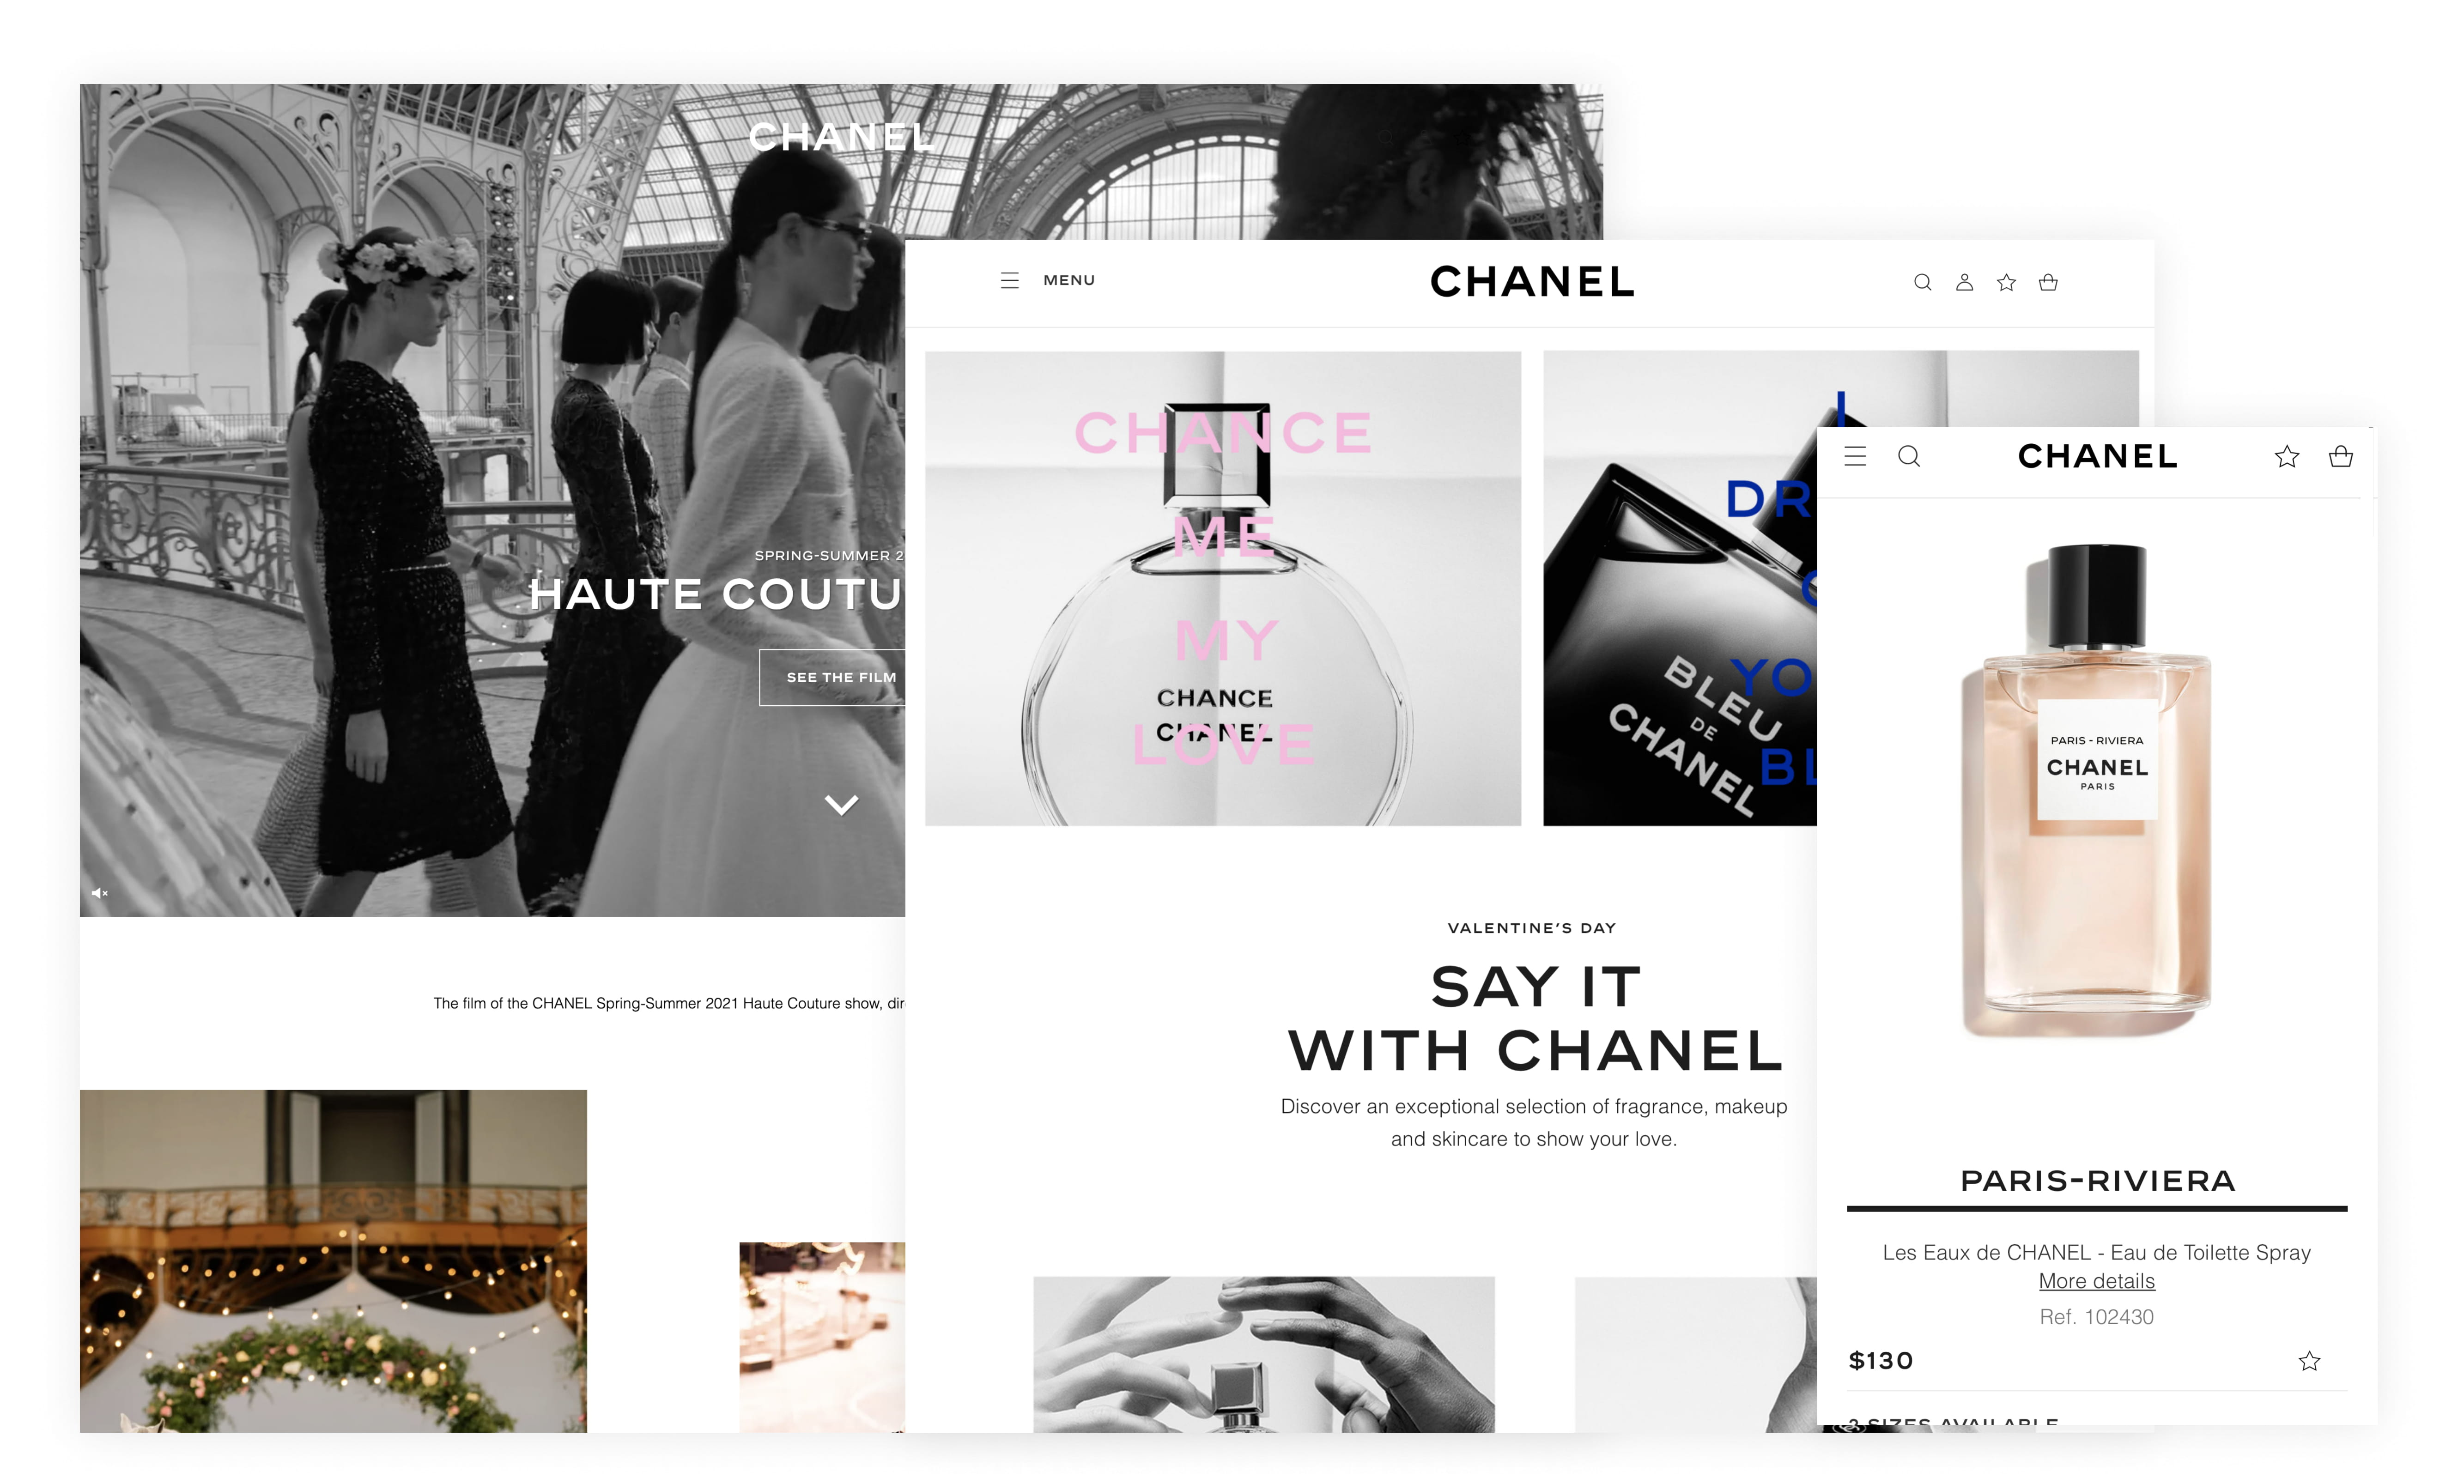 G & Co. - Chanel Mobile App Development, Chanel Development Agency, Chanel Web Design Agency, Chanel App Agency, Chanel eCommerce Agency, Chanel UI/UX Agency, Chanel Digital Agency, Chanel Marketing Agency